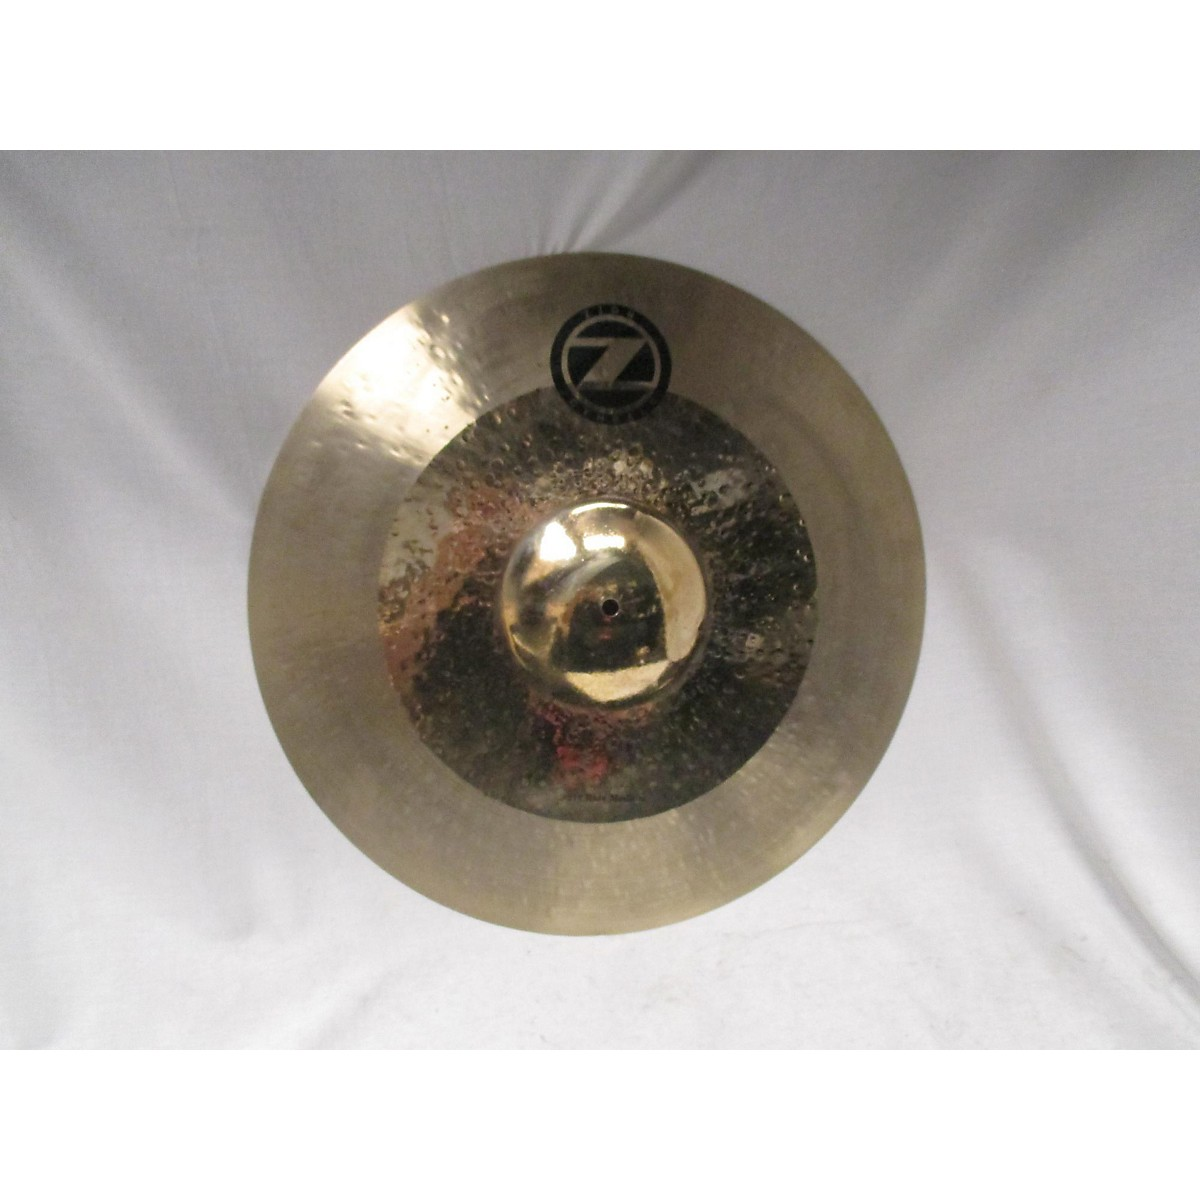 Zion 21in Epic Ride Cymbal